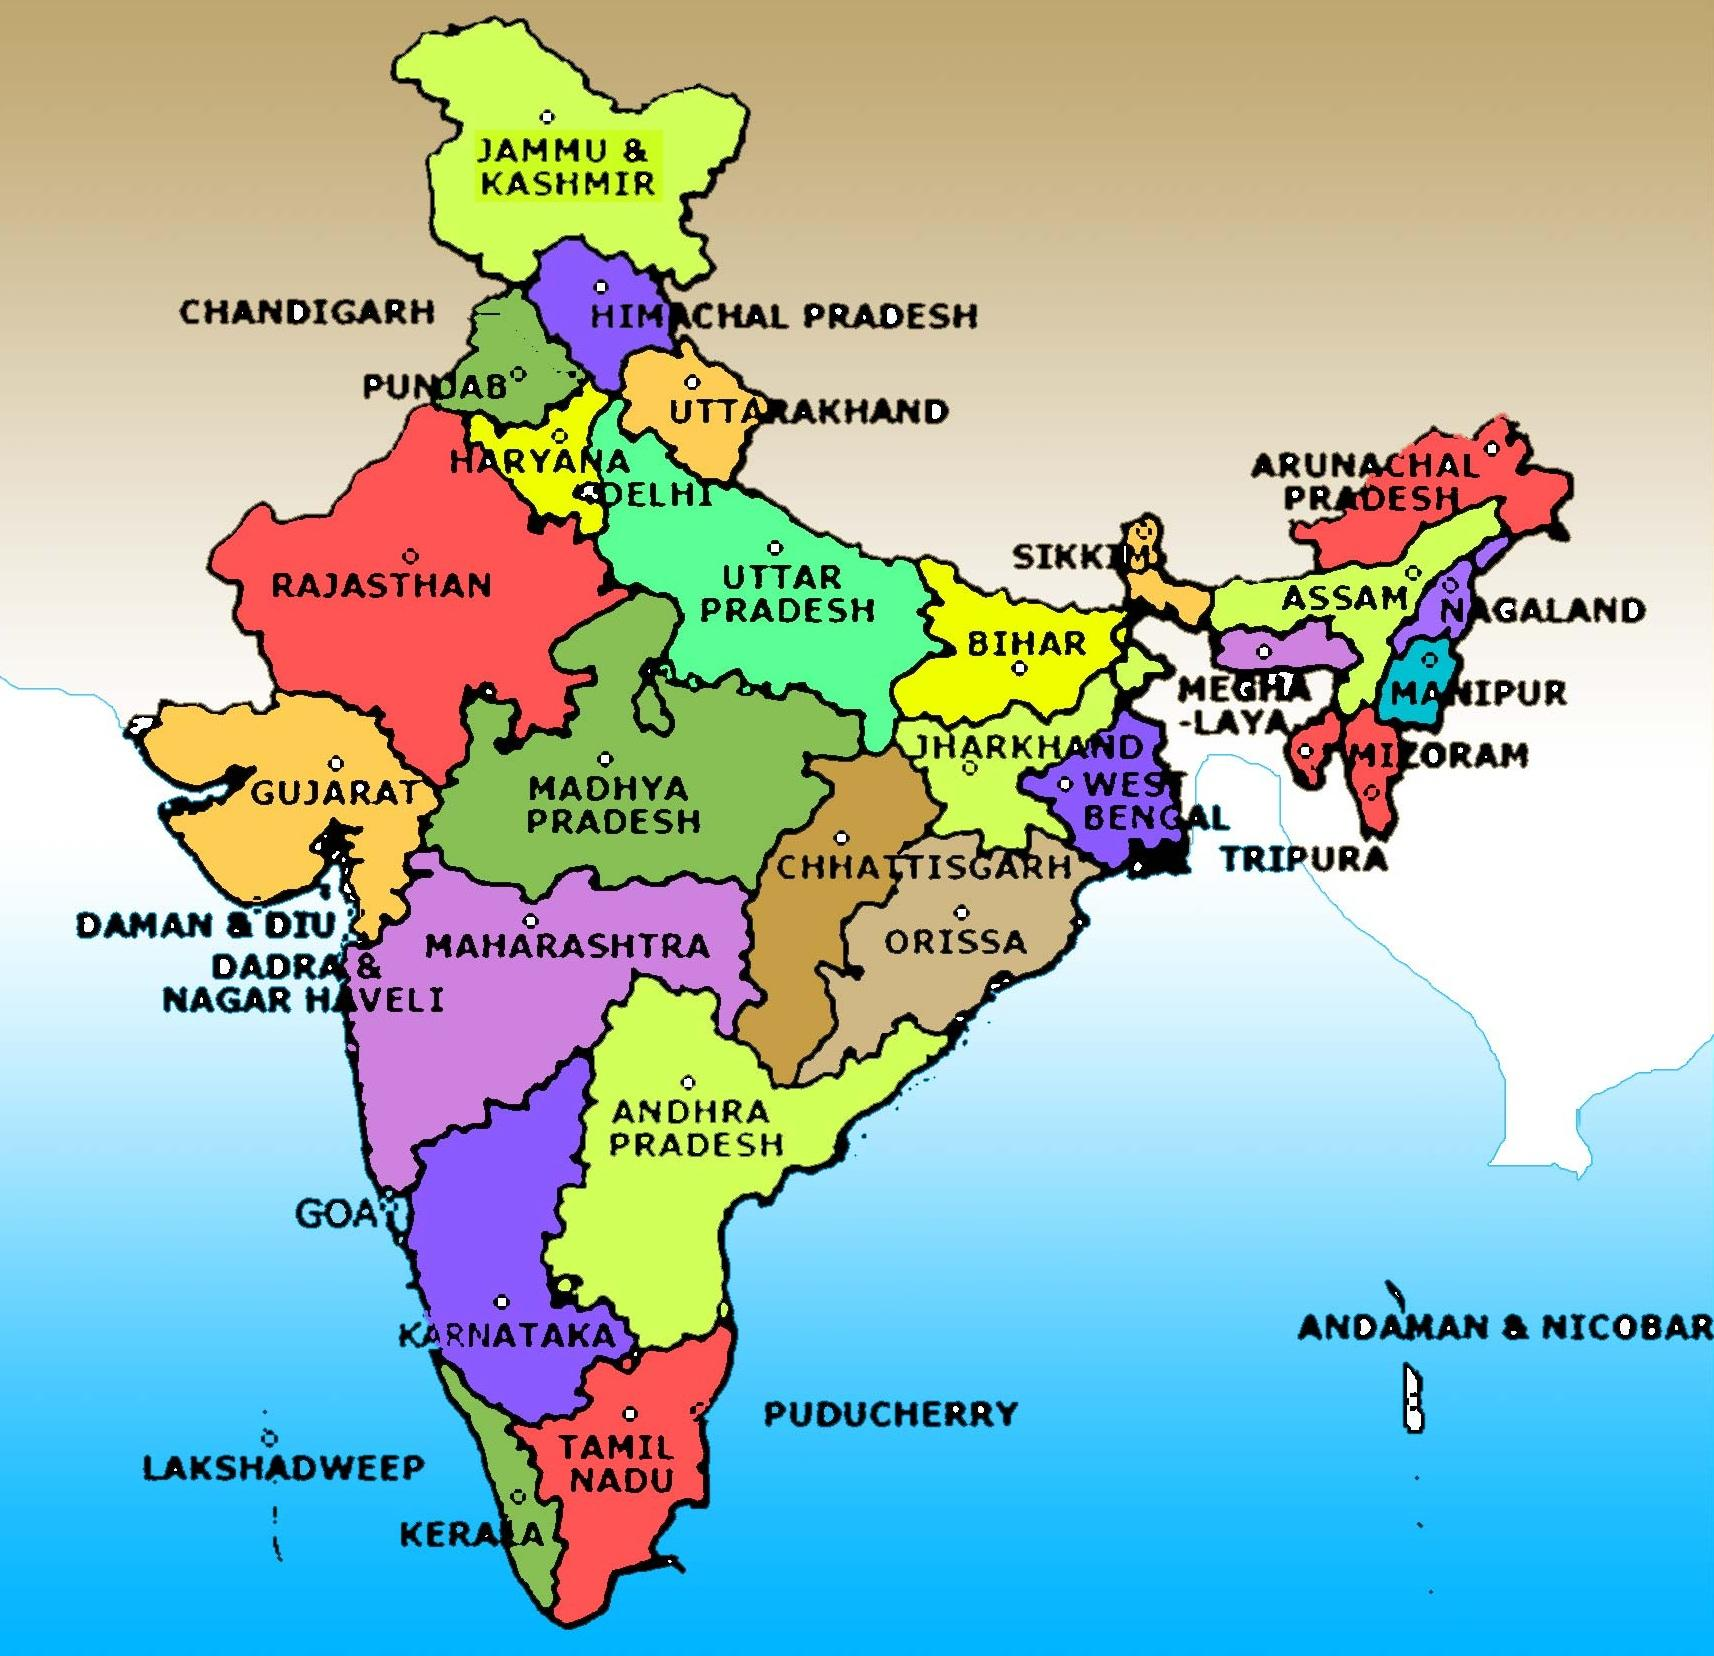 India Map With State Name.India Map Image With State Name Map Of India Image With State Name